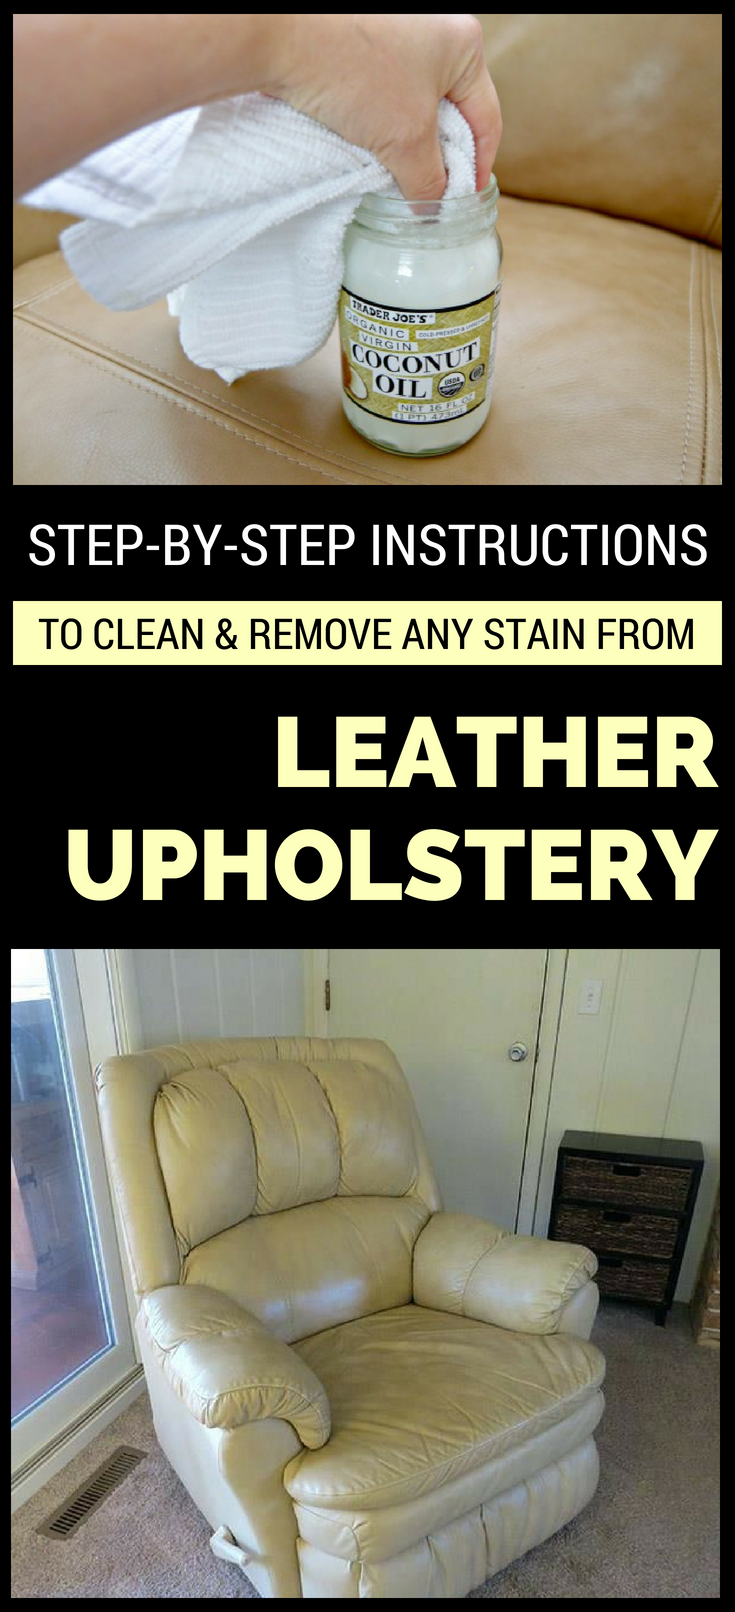 Step-By-Step Instructions To Clean And Remove Any Stain